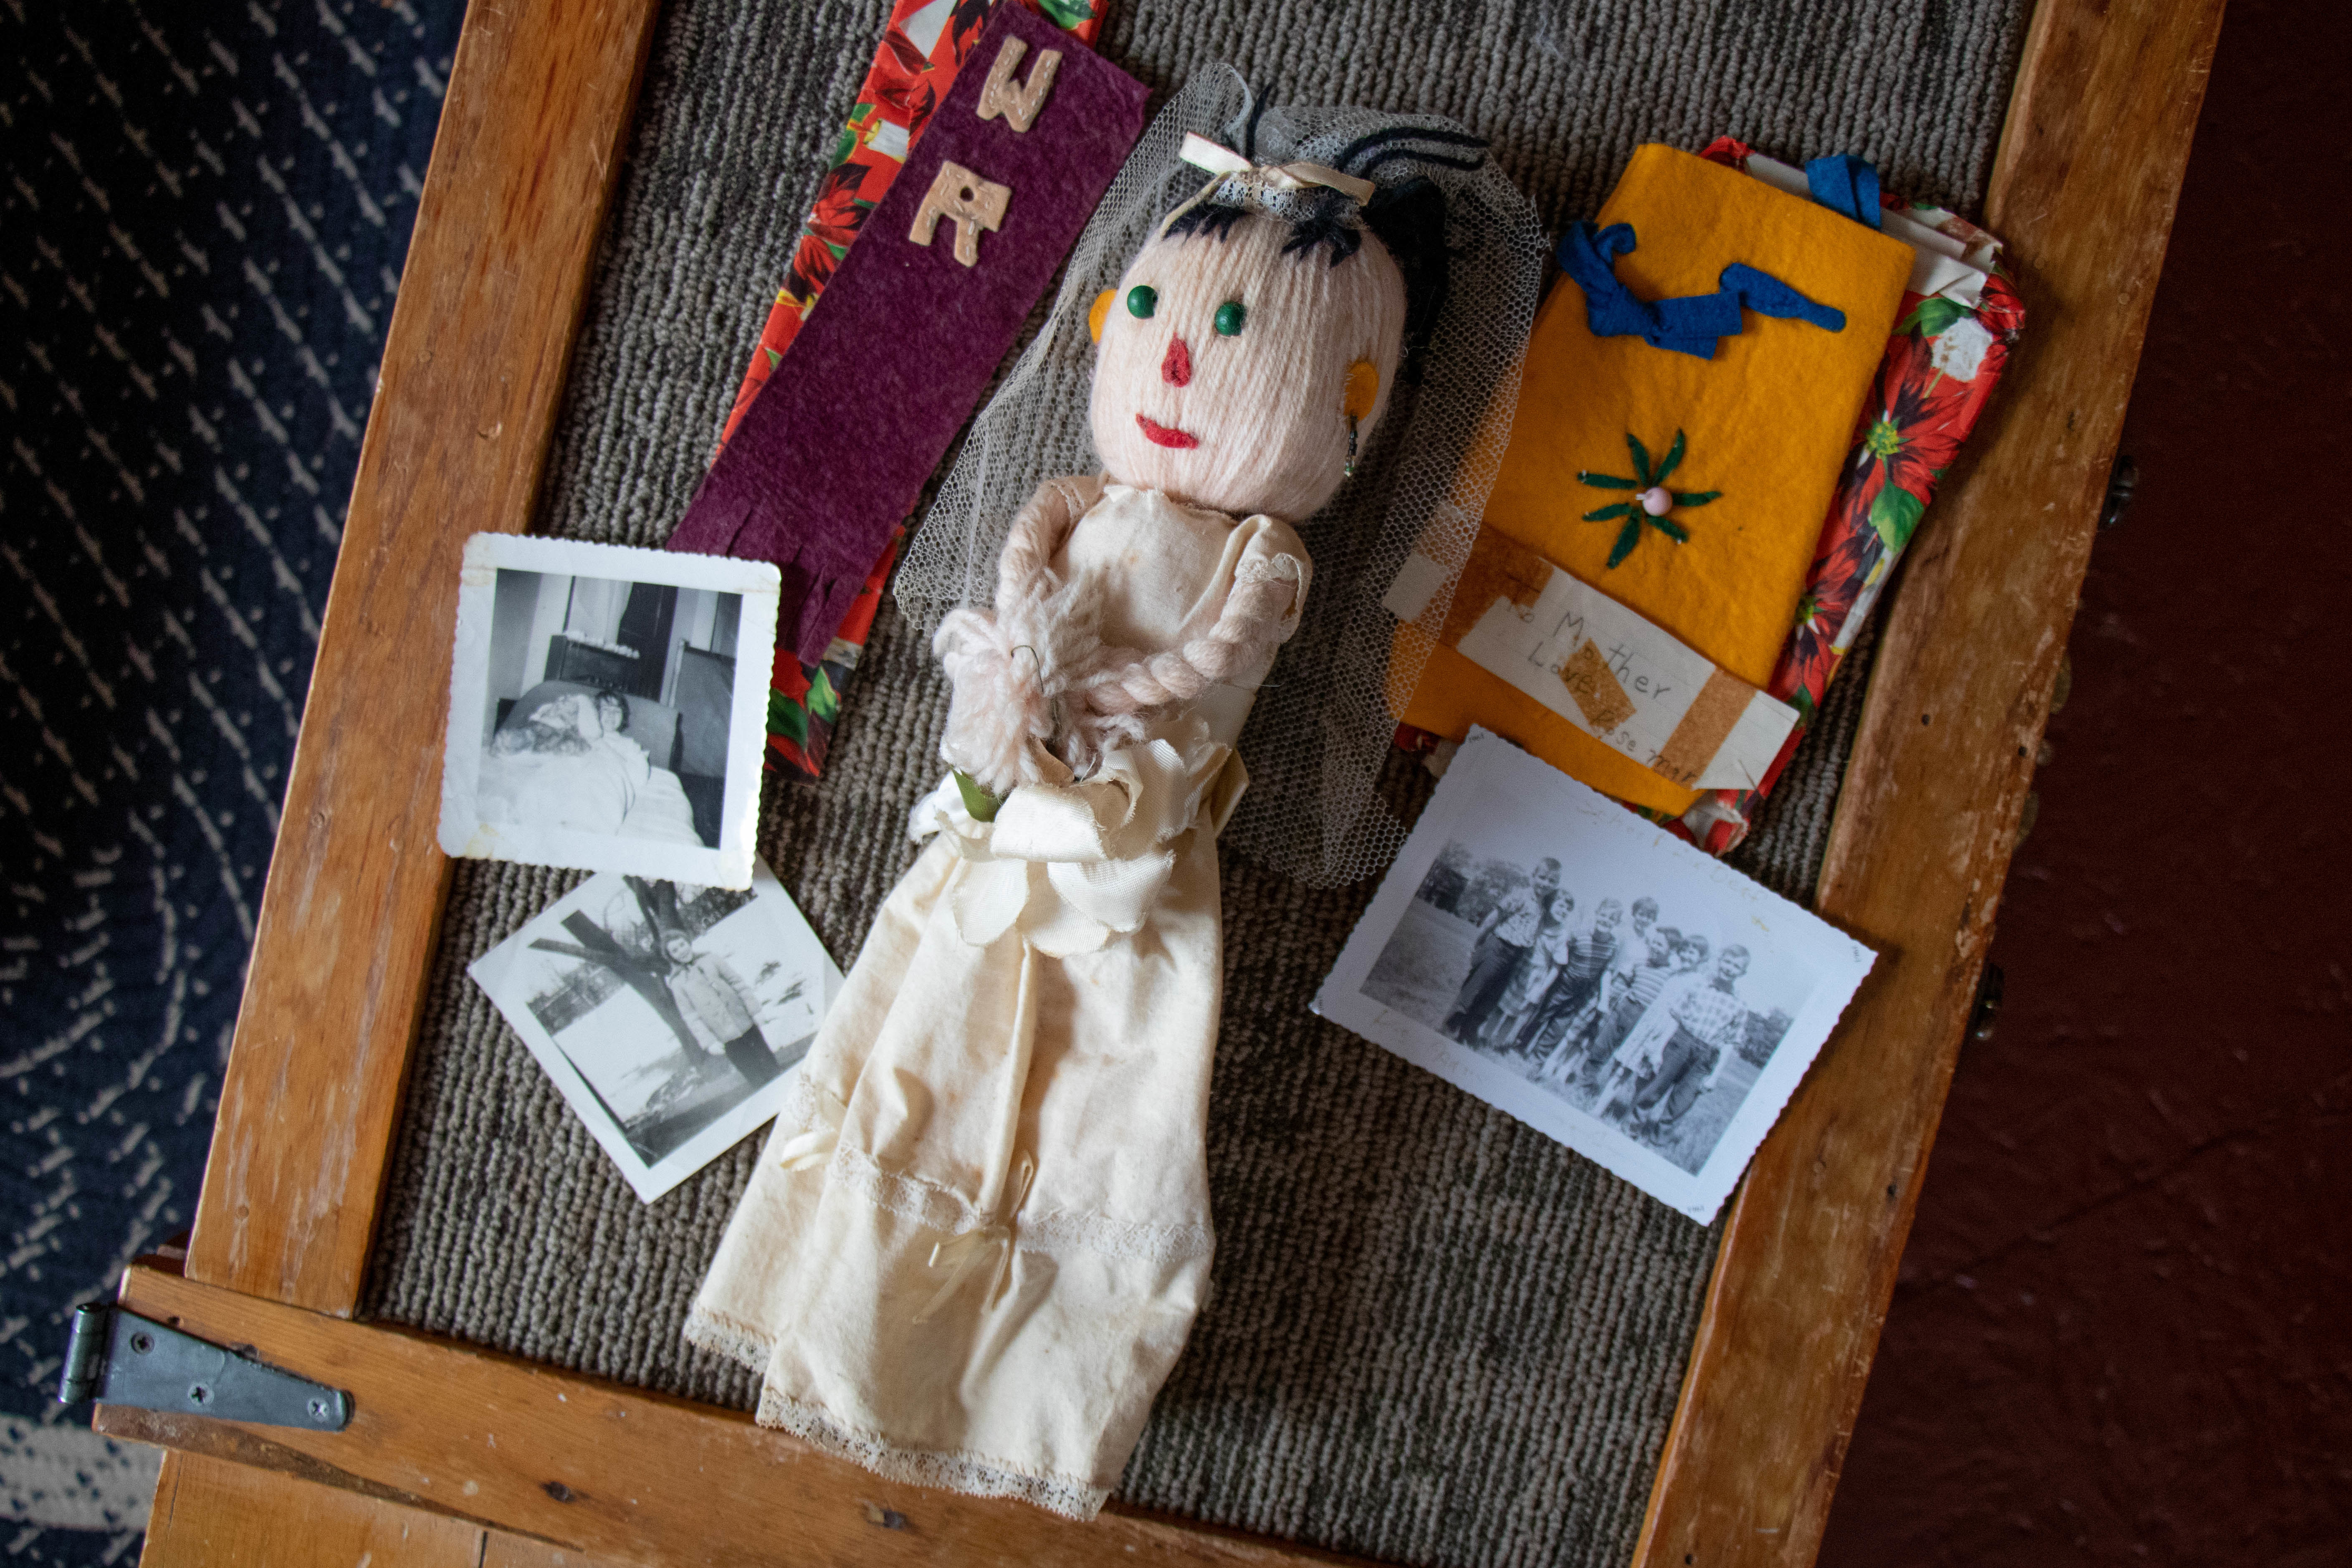 This doll is one of the few things Ross-Brimble has kept from her time at the deaf schools. (Robert Short/CBC)